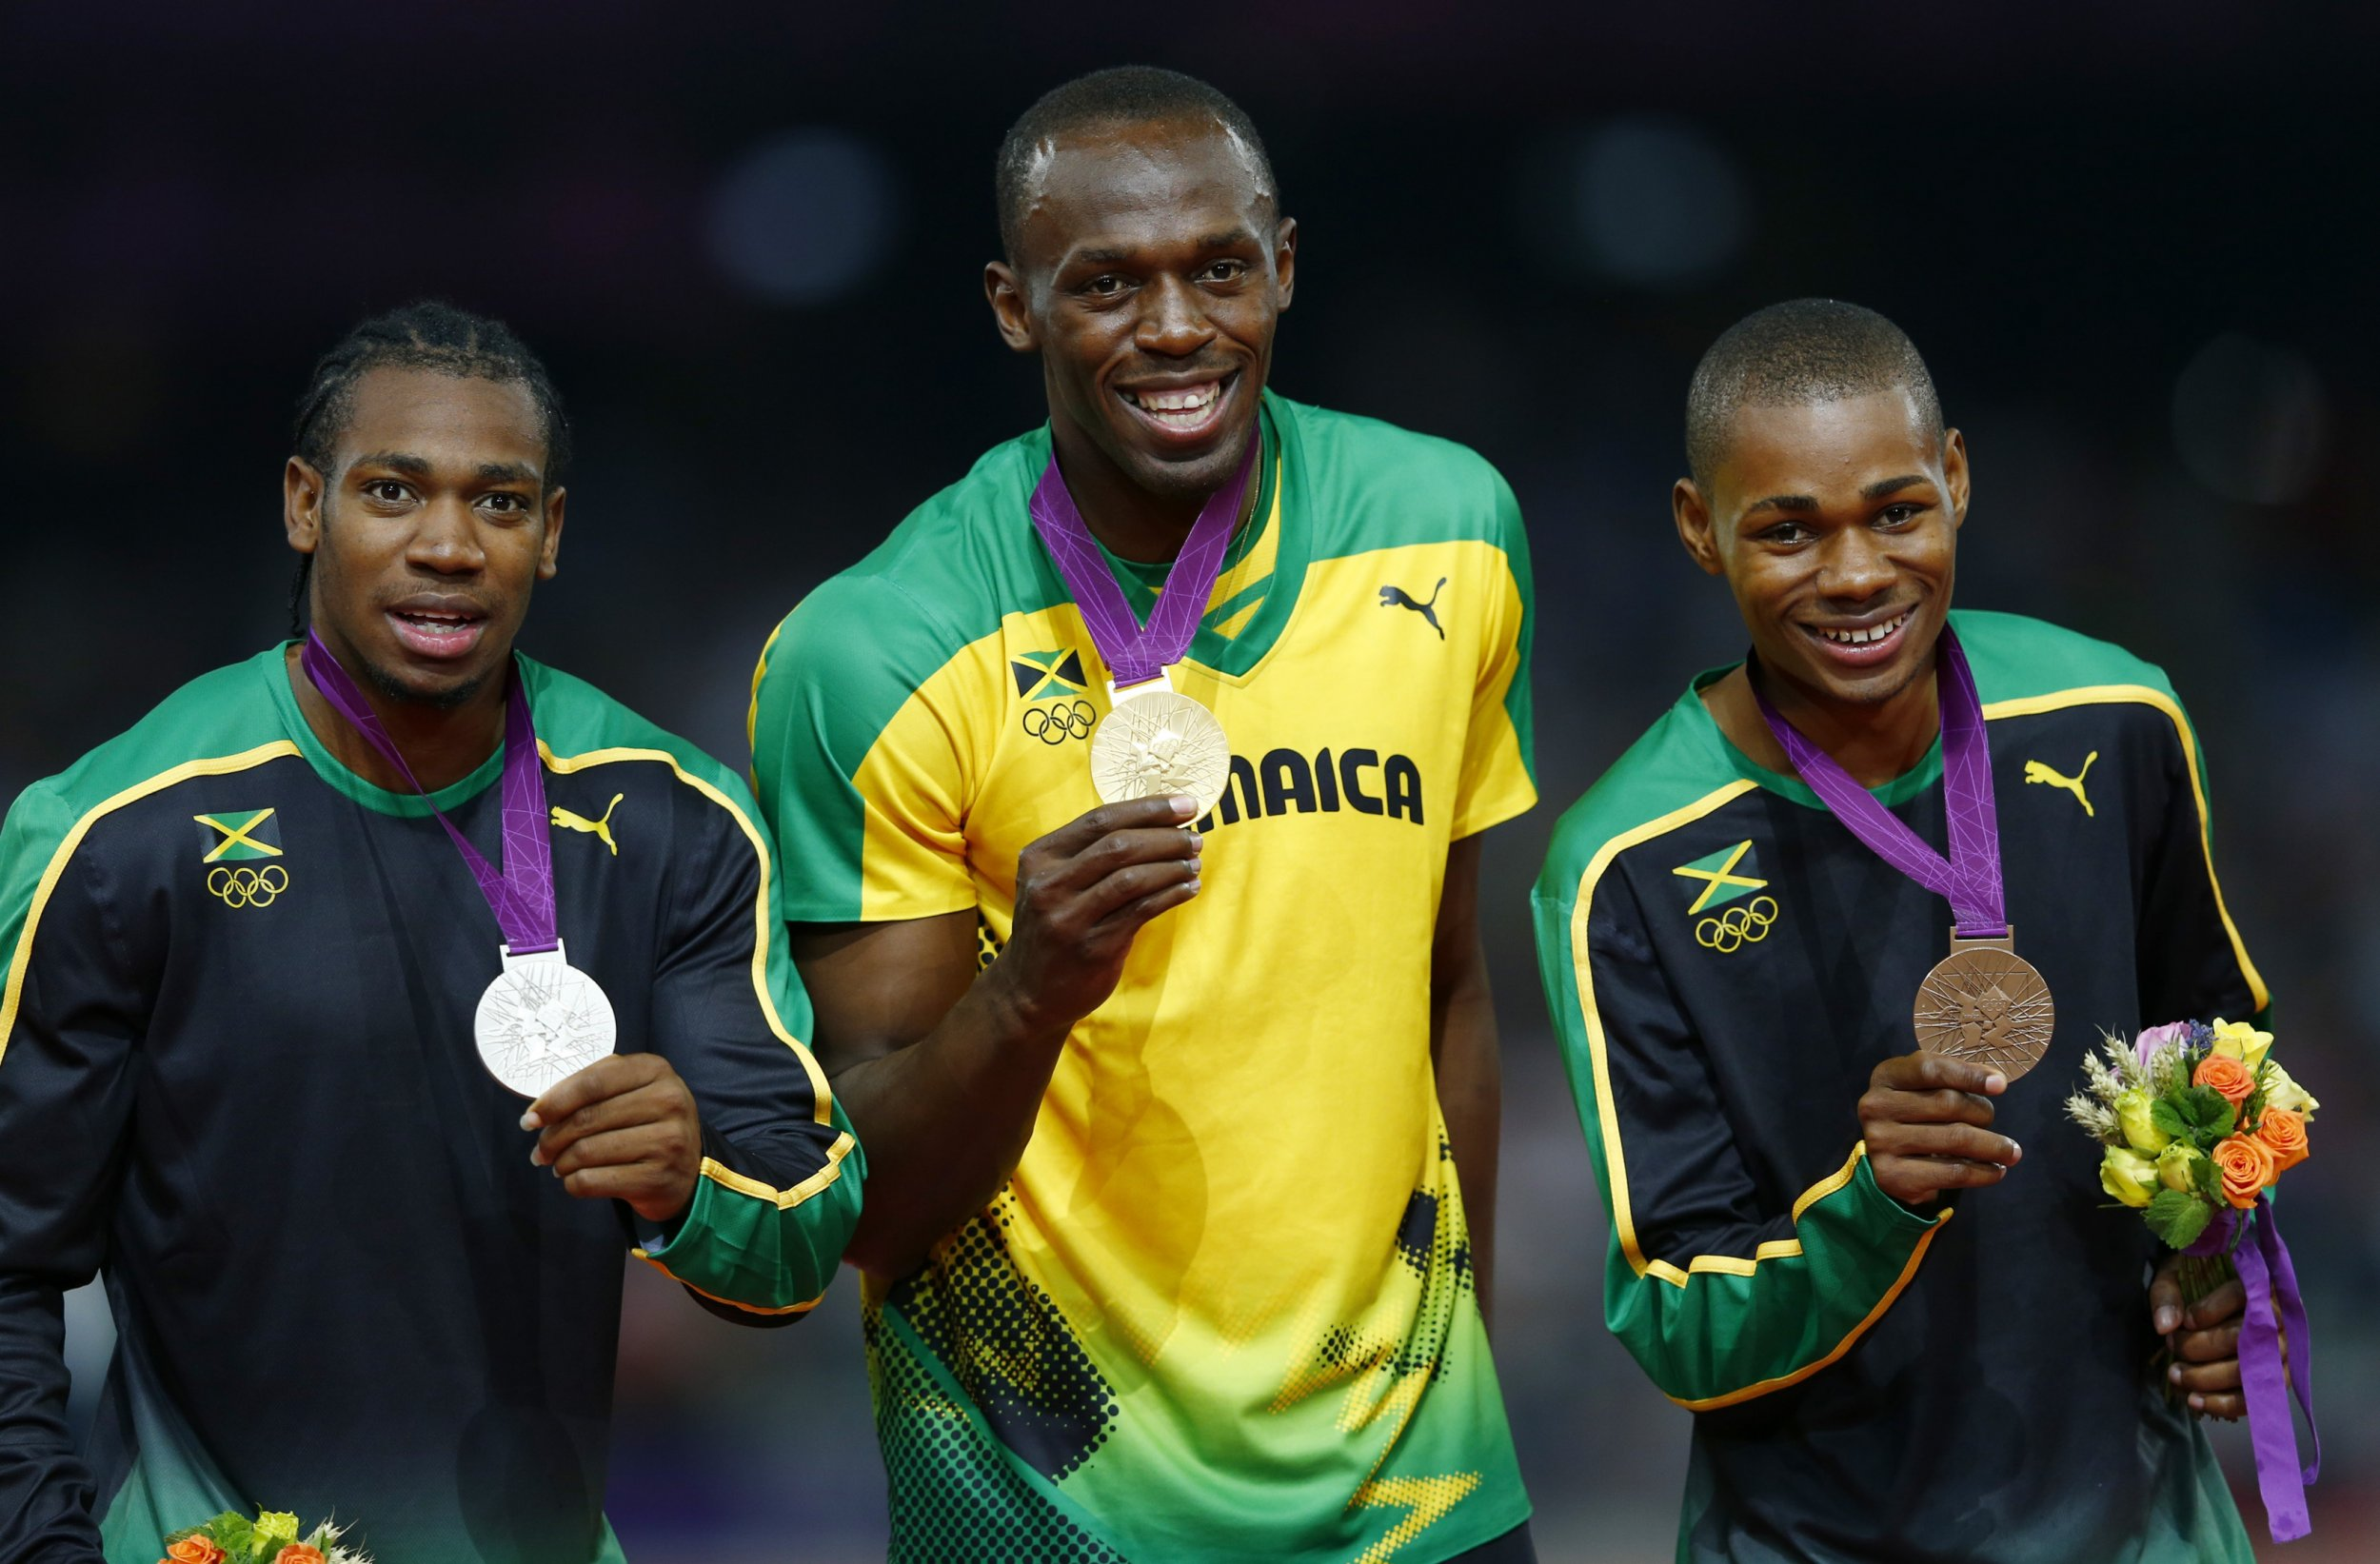 Blake, Bolt and Warren Weir at the 200-meter medal ceremony, London 2012